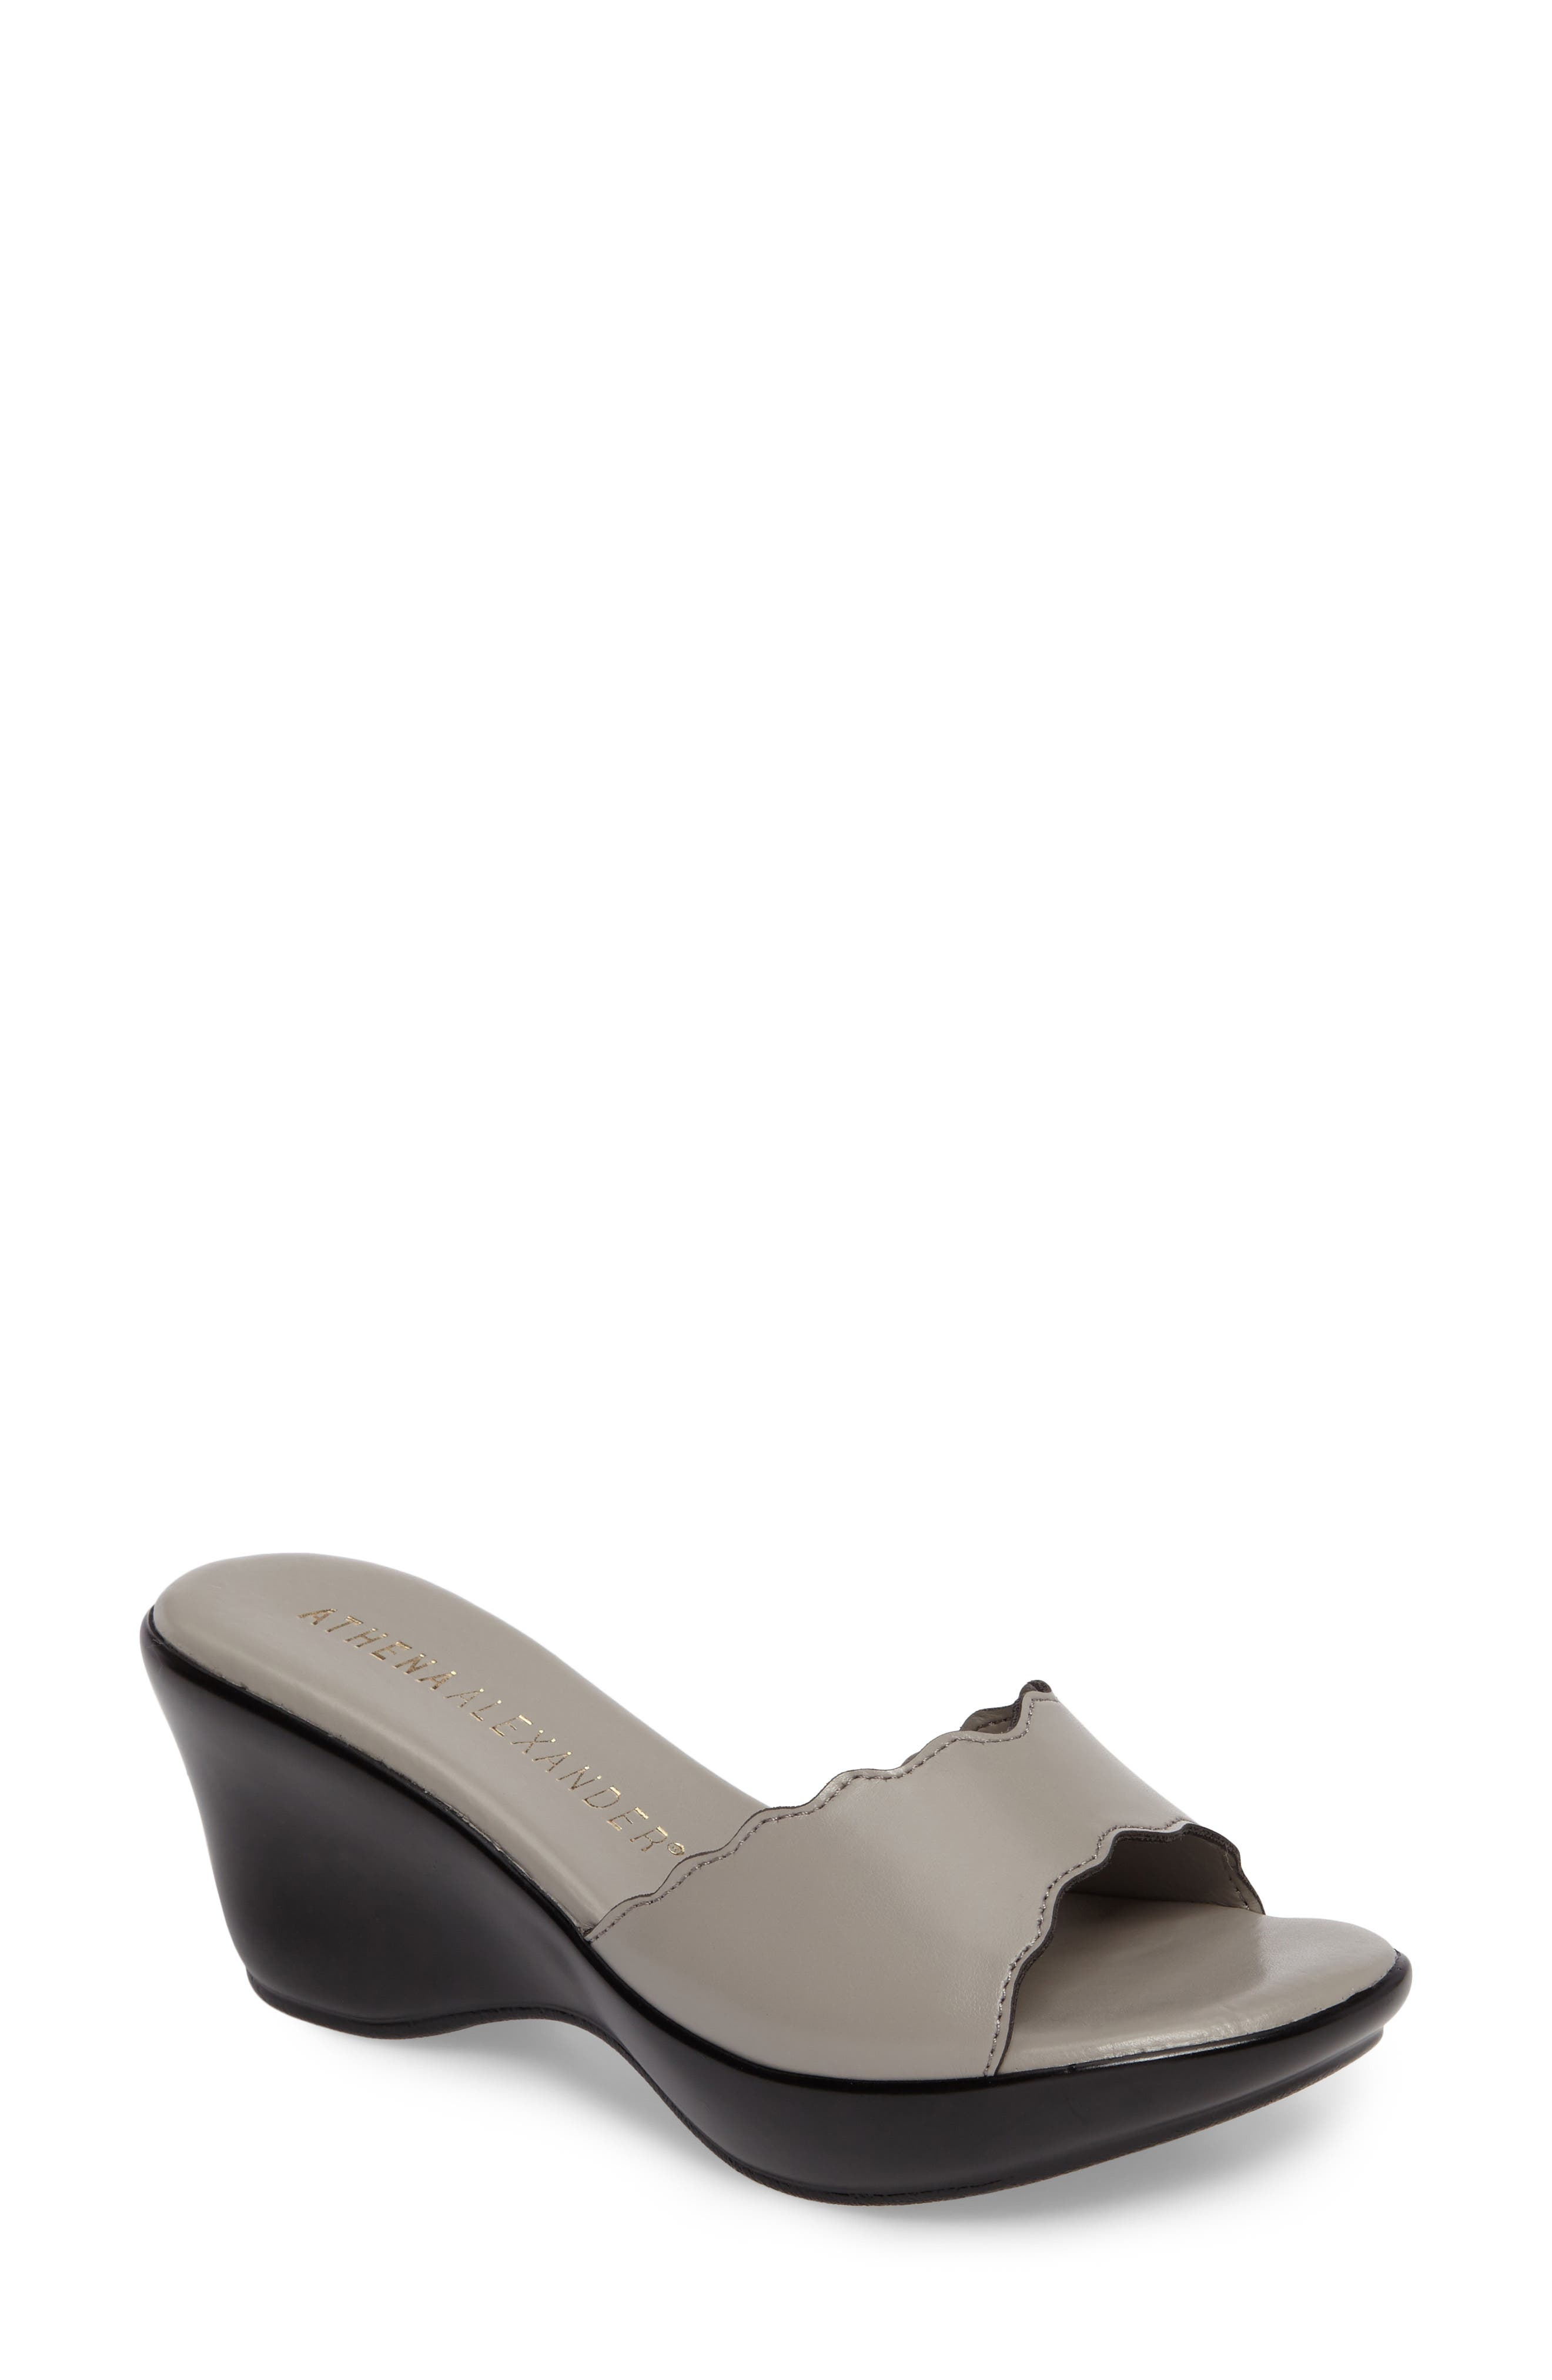 Novva Sandal,                         Main,                         color, Grey Synthetic